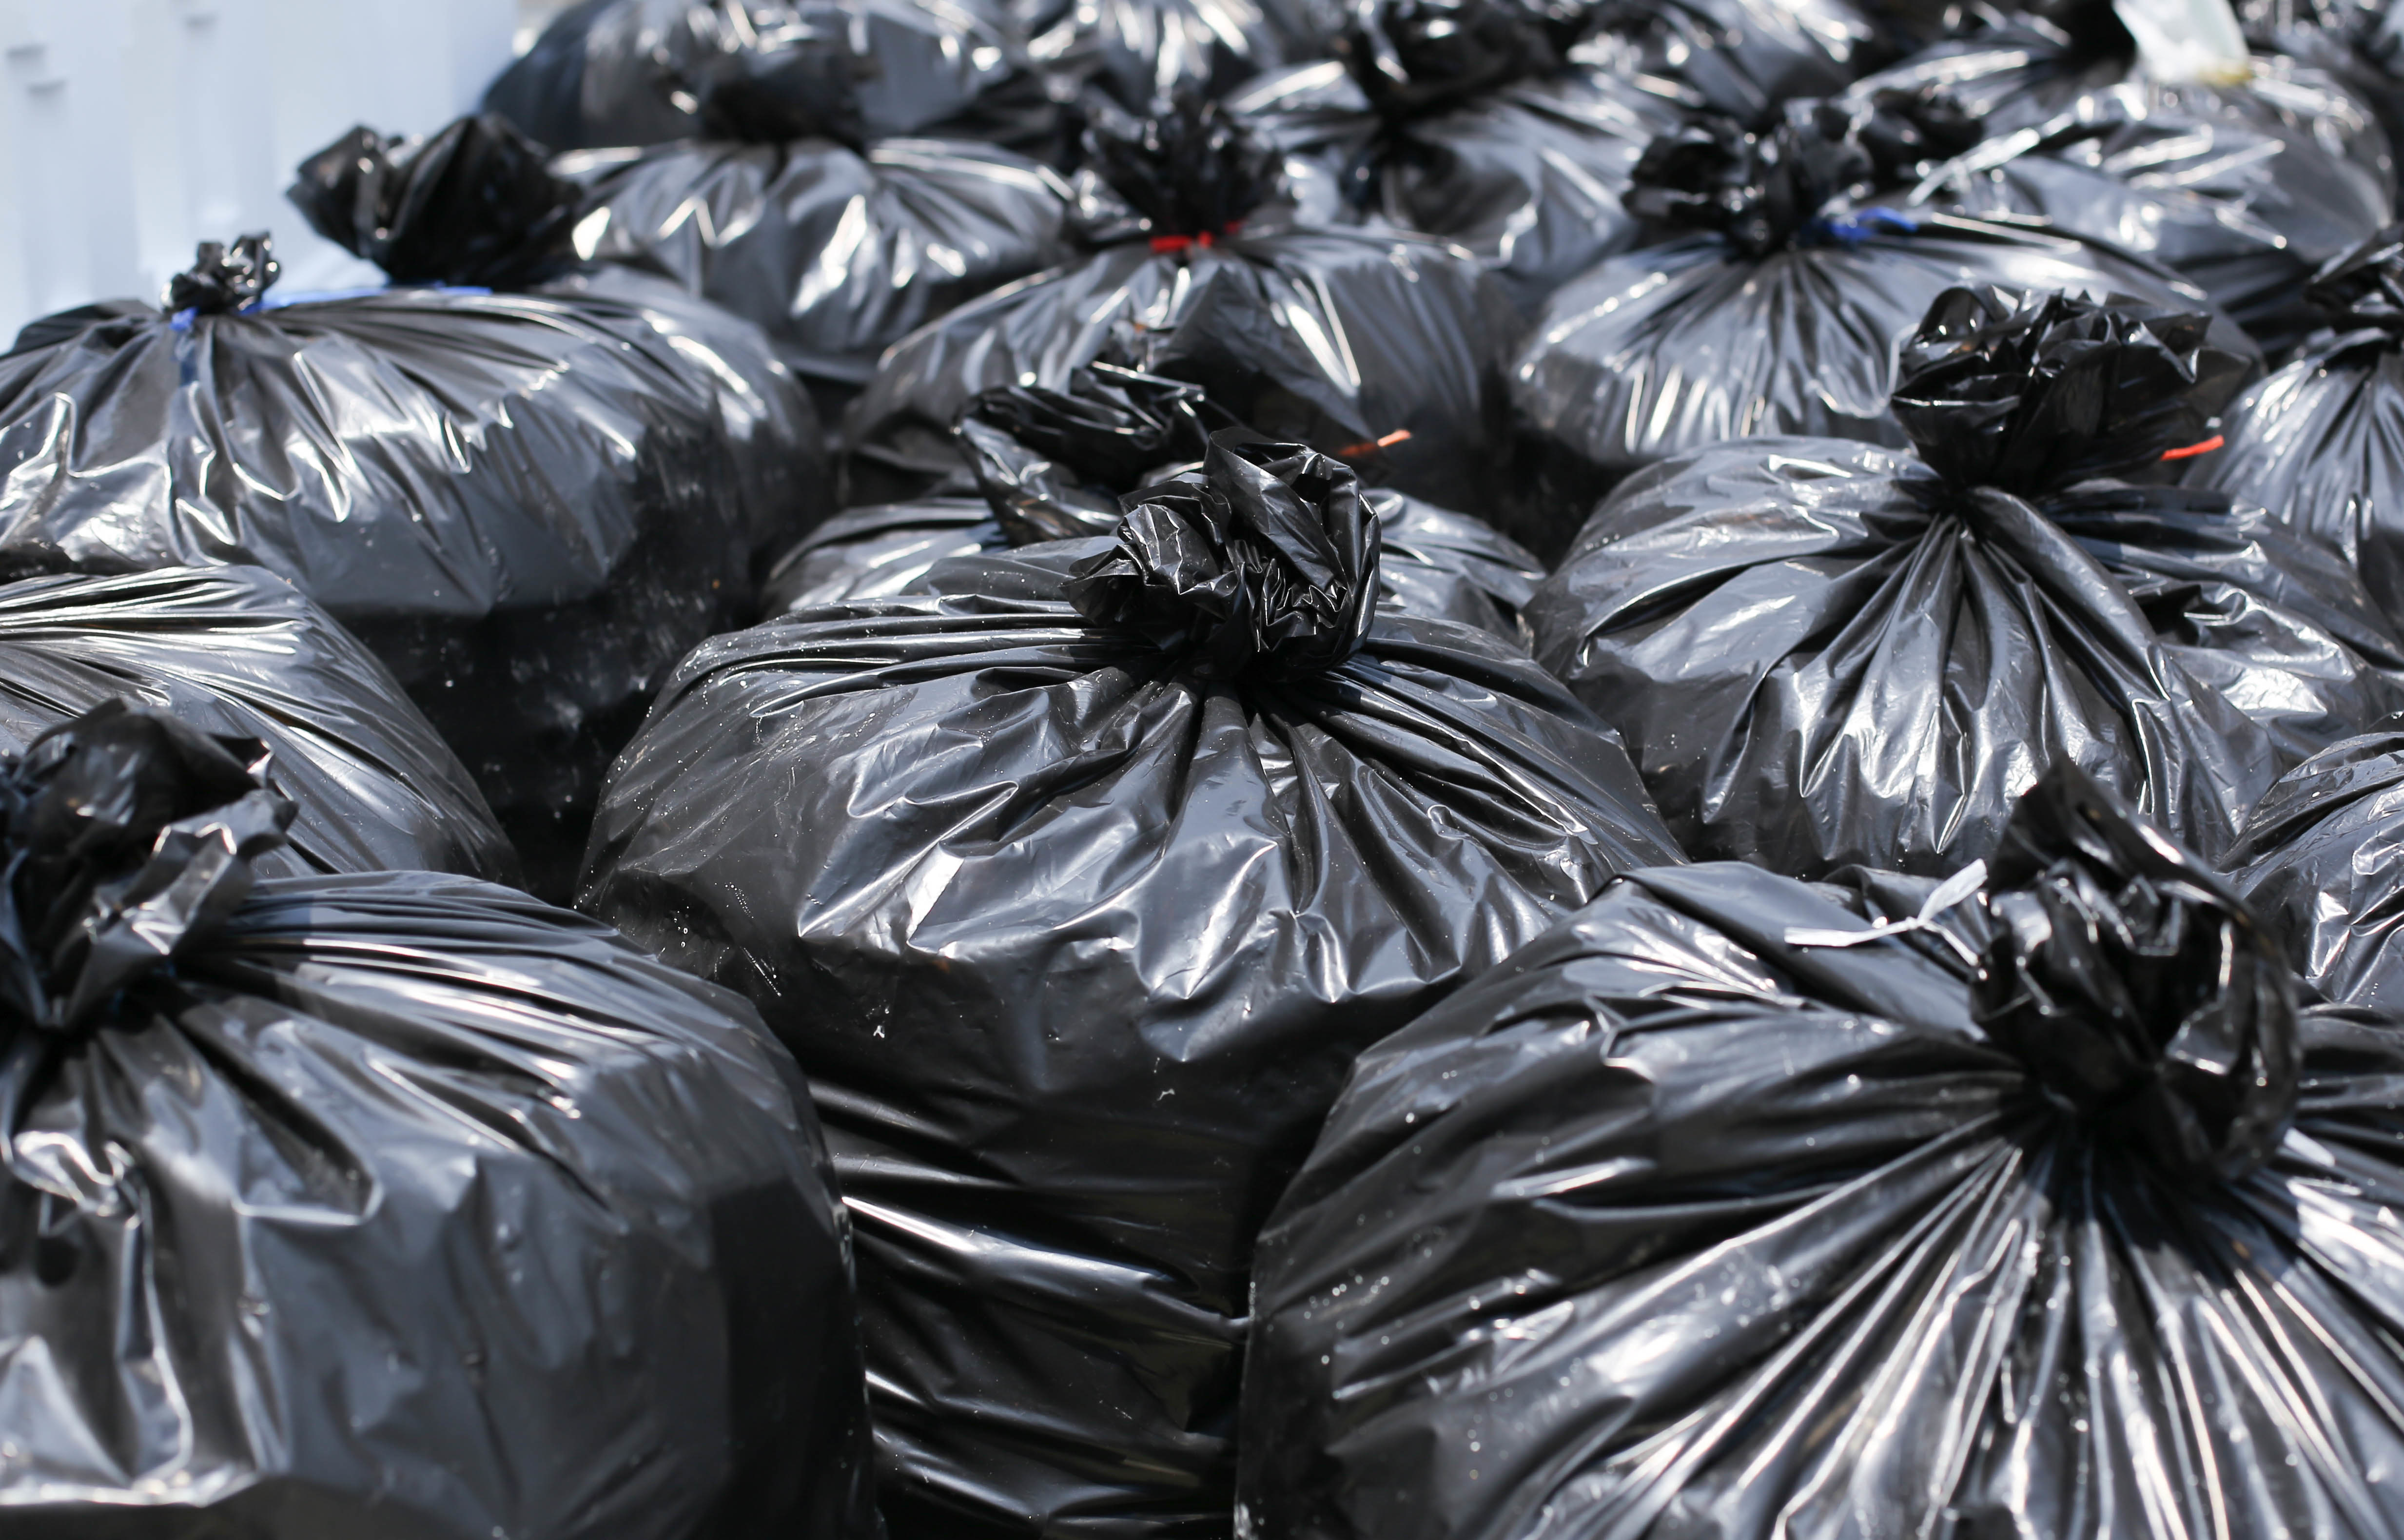 Garbage bag sales skyrocket after supermarket plastic bag ban